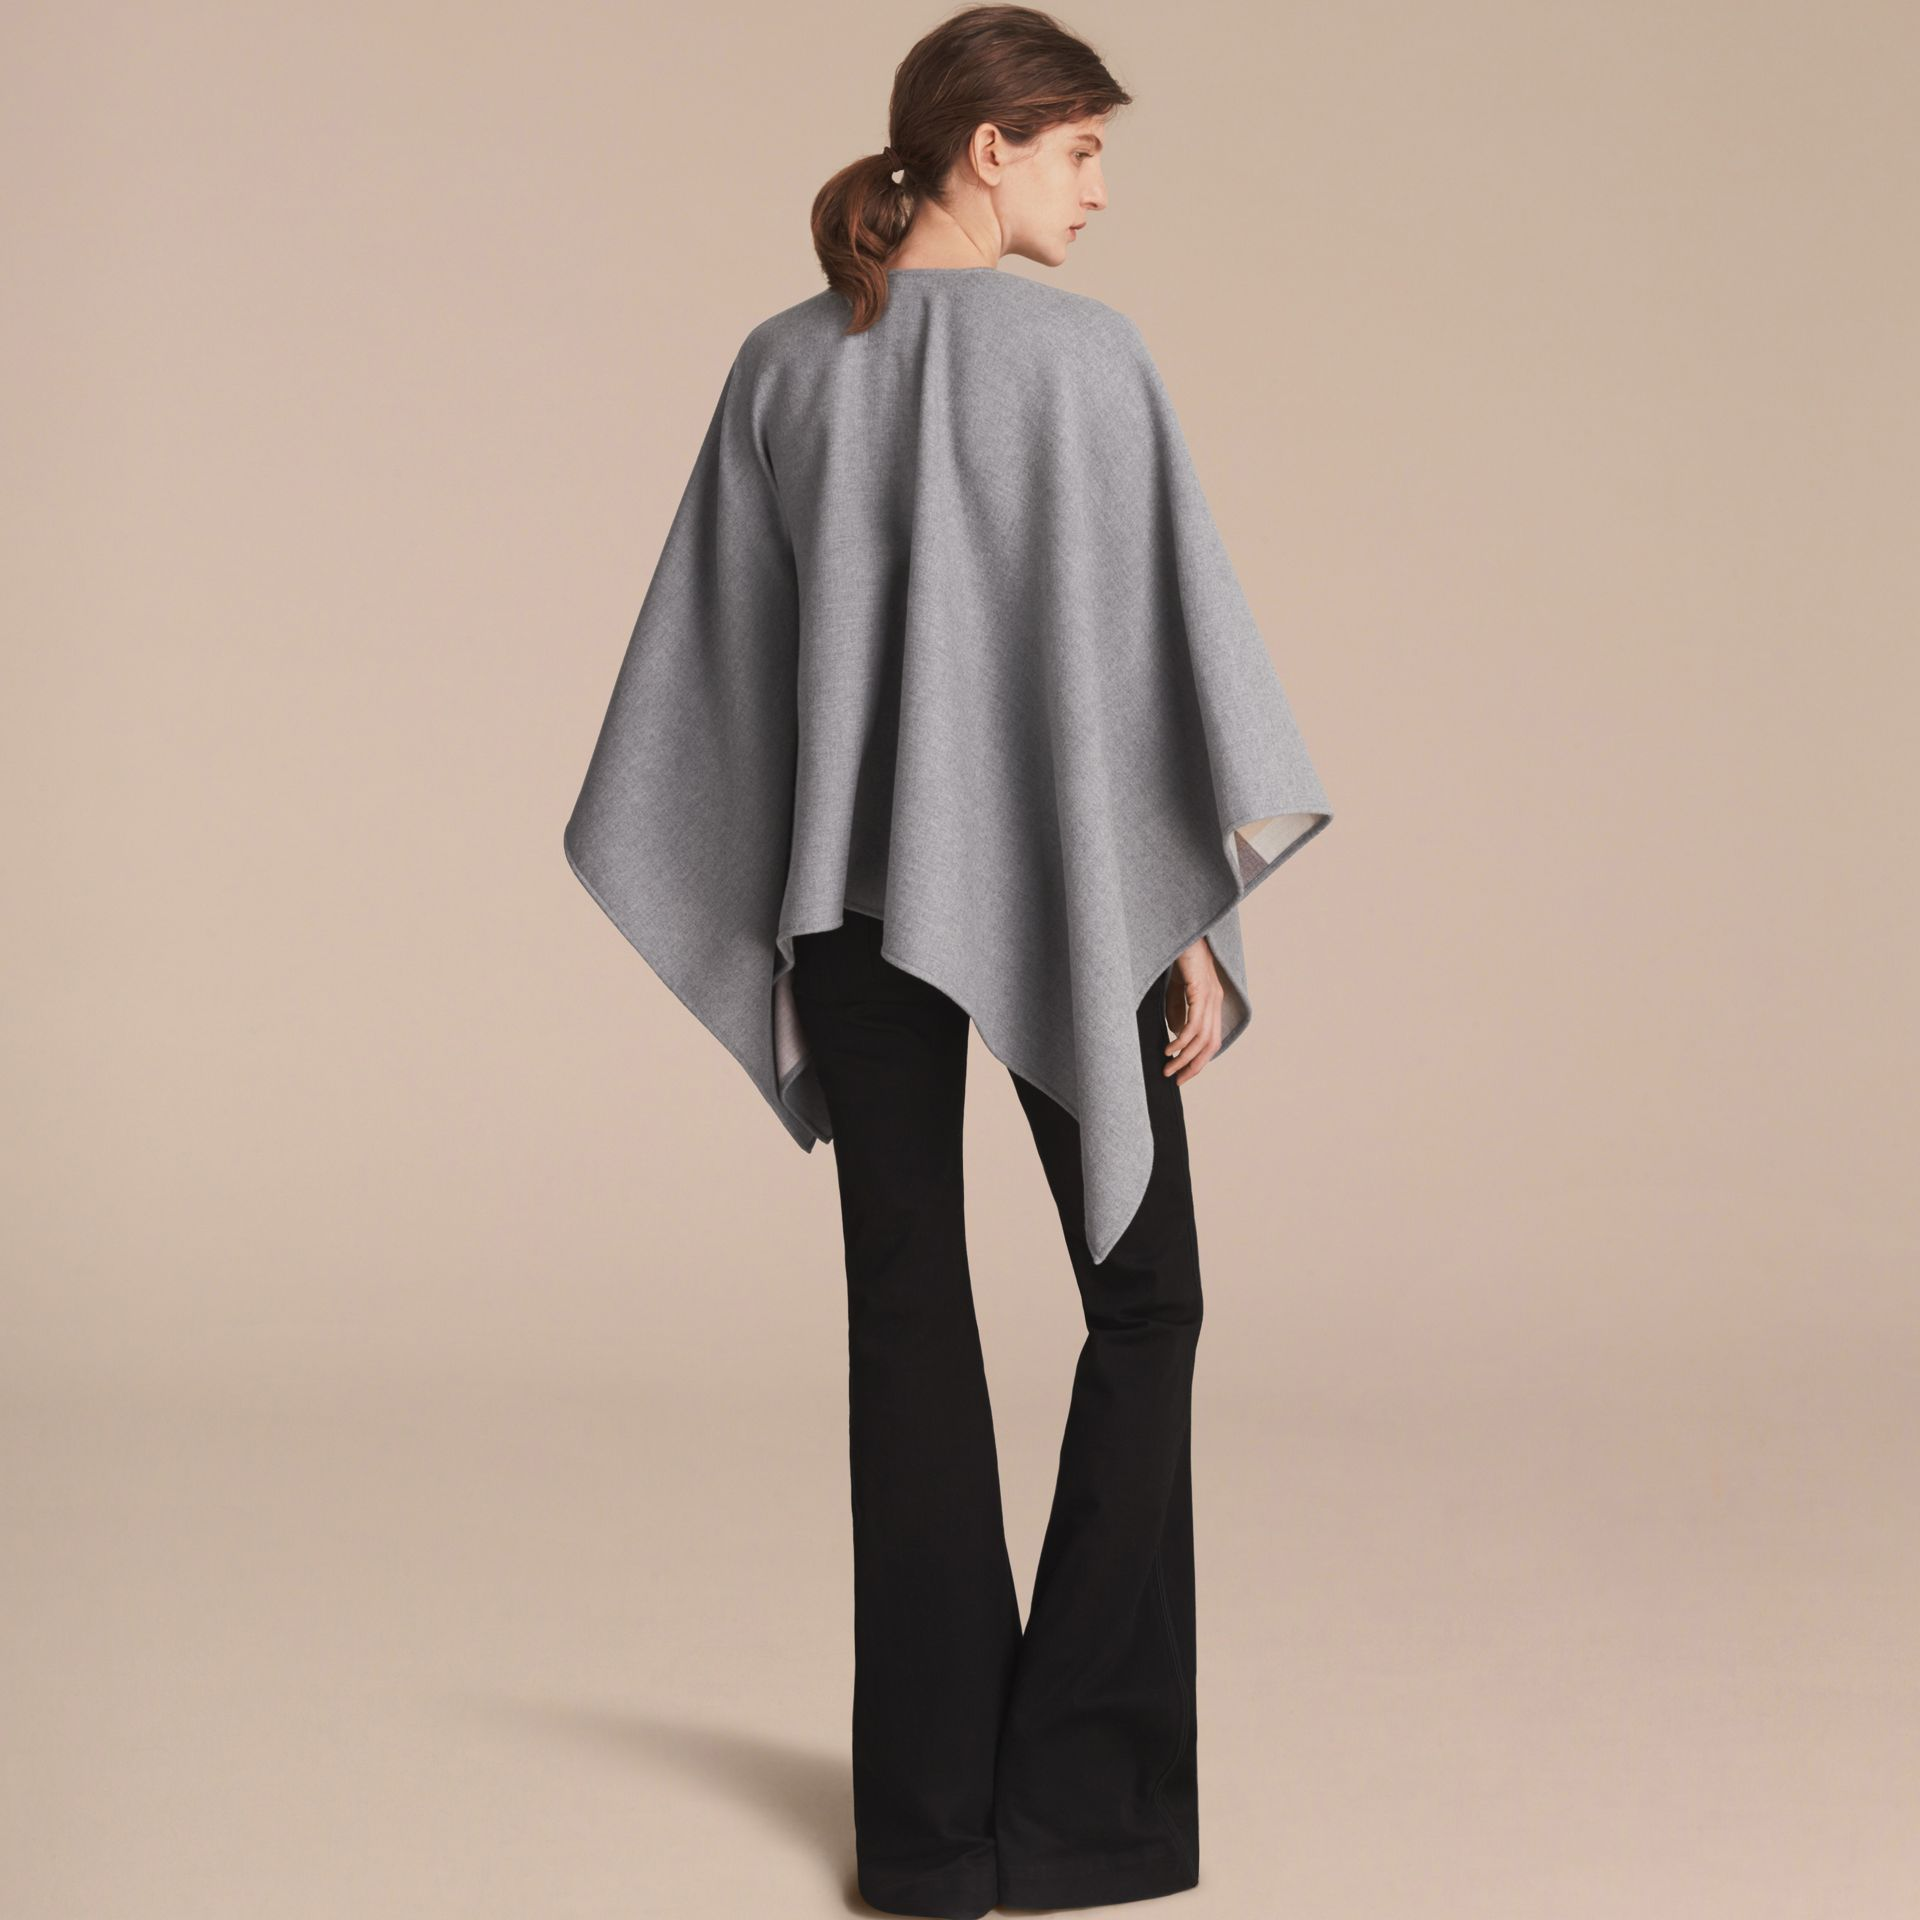 Merino Wool Poncho in Light Grey - Women | Burberry - gallery image 3